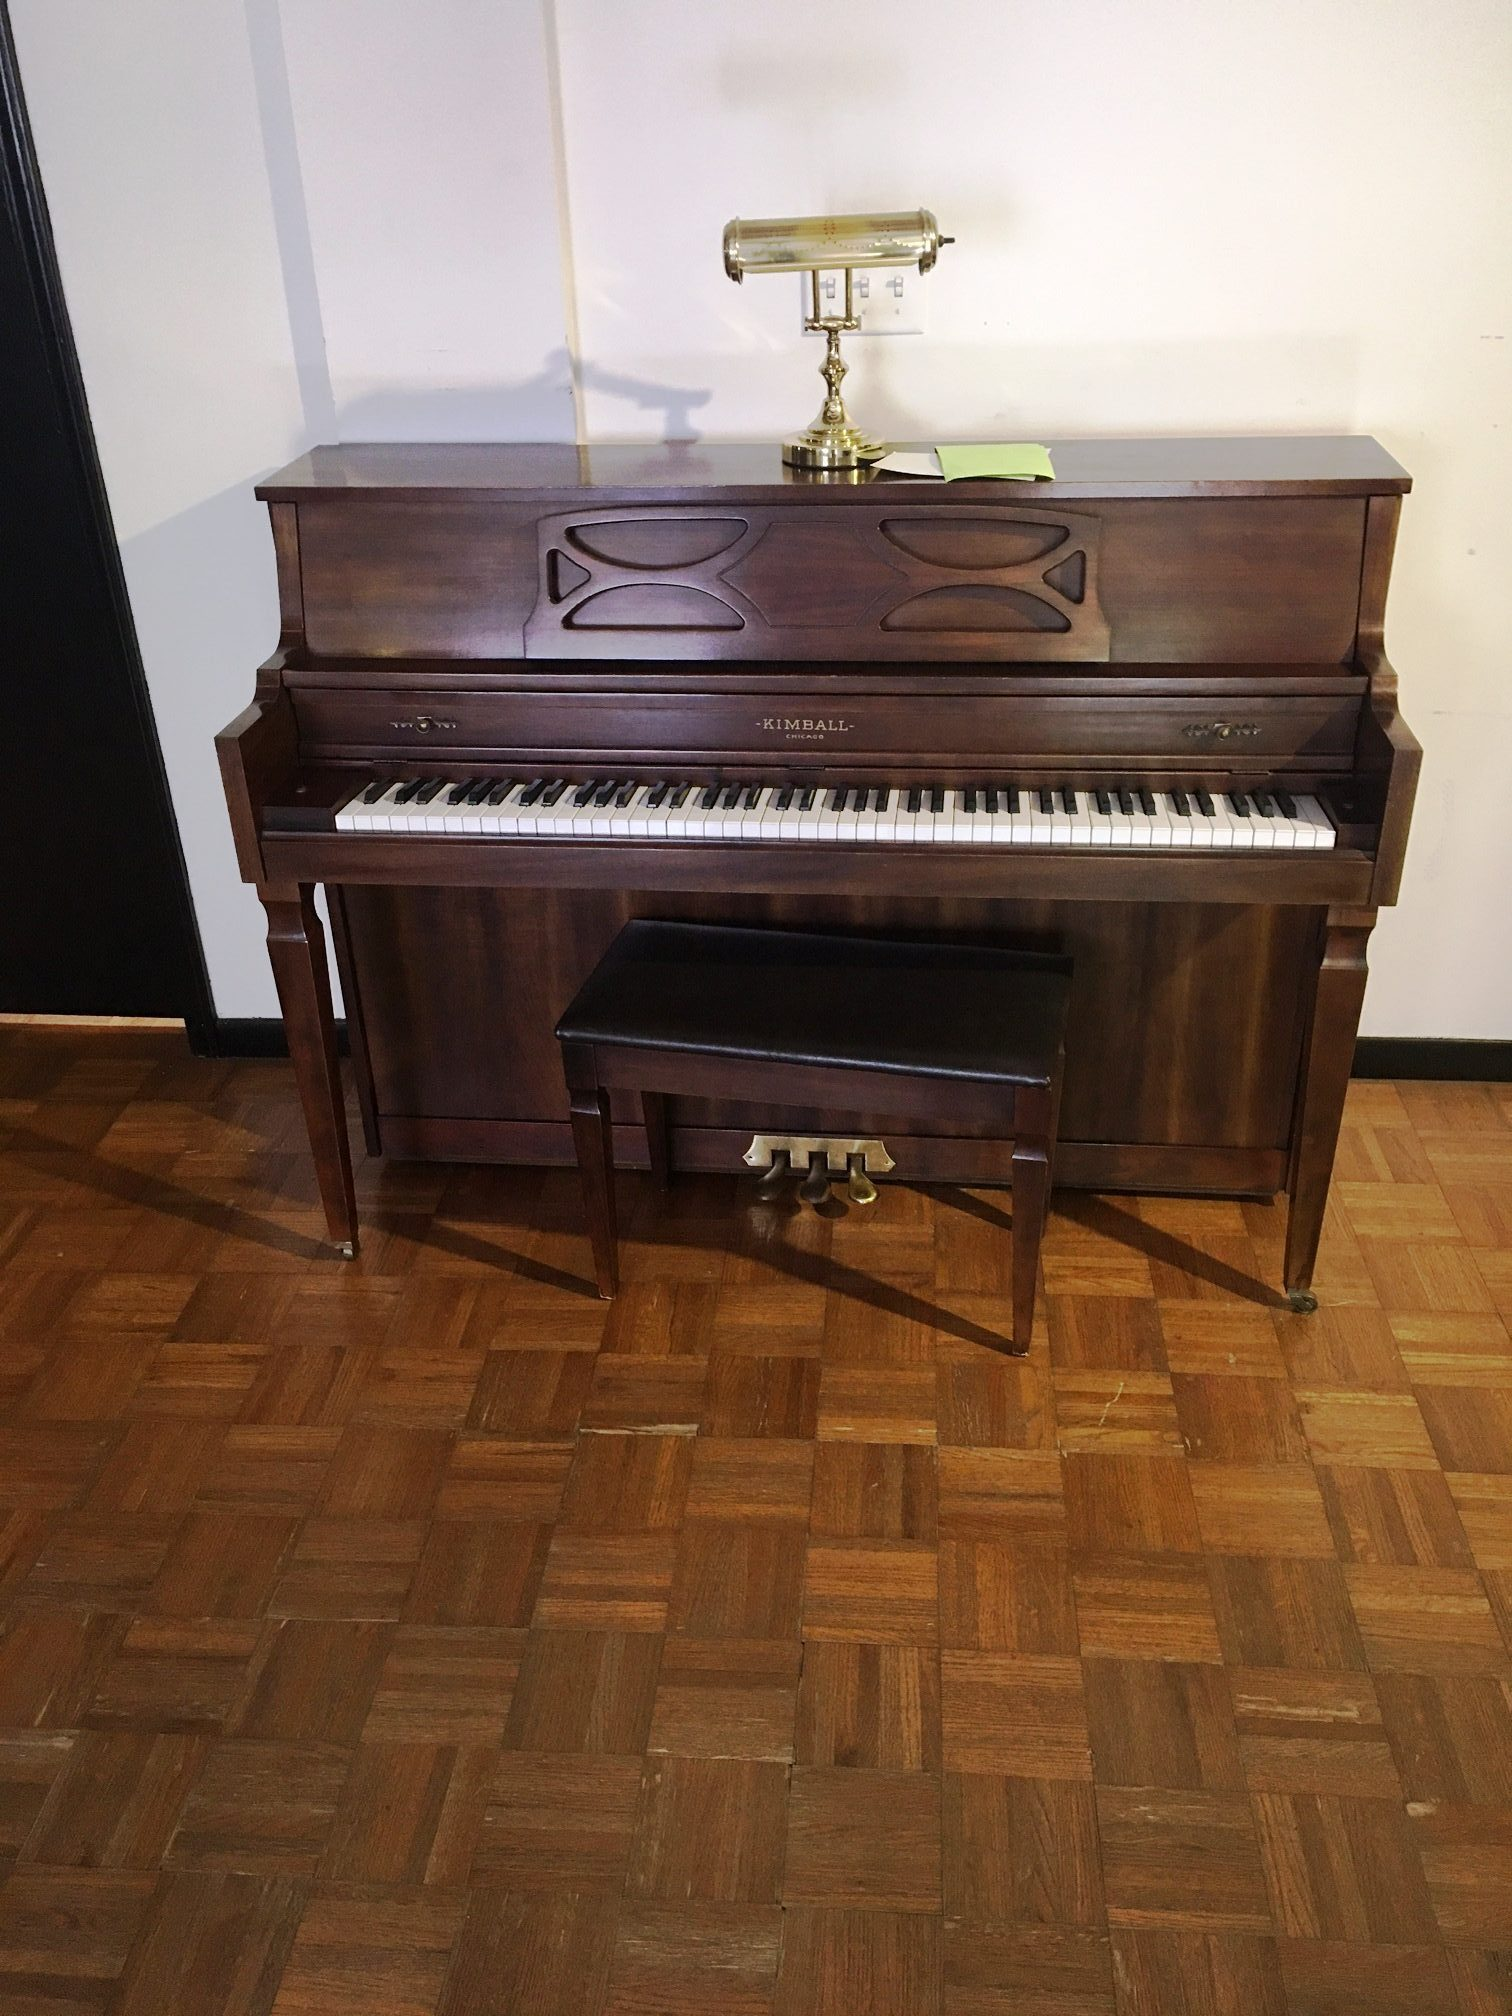 ConsoleMade in 1988$1,499